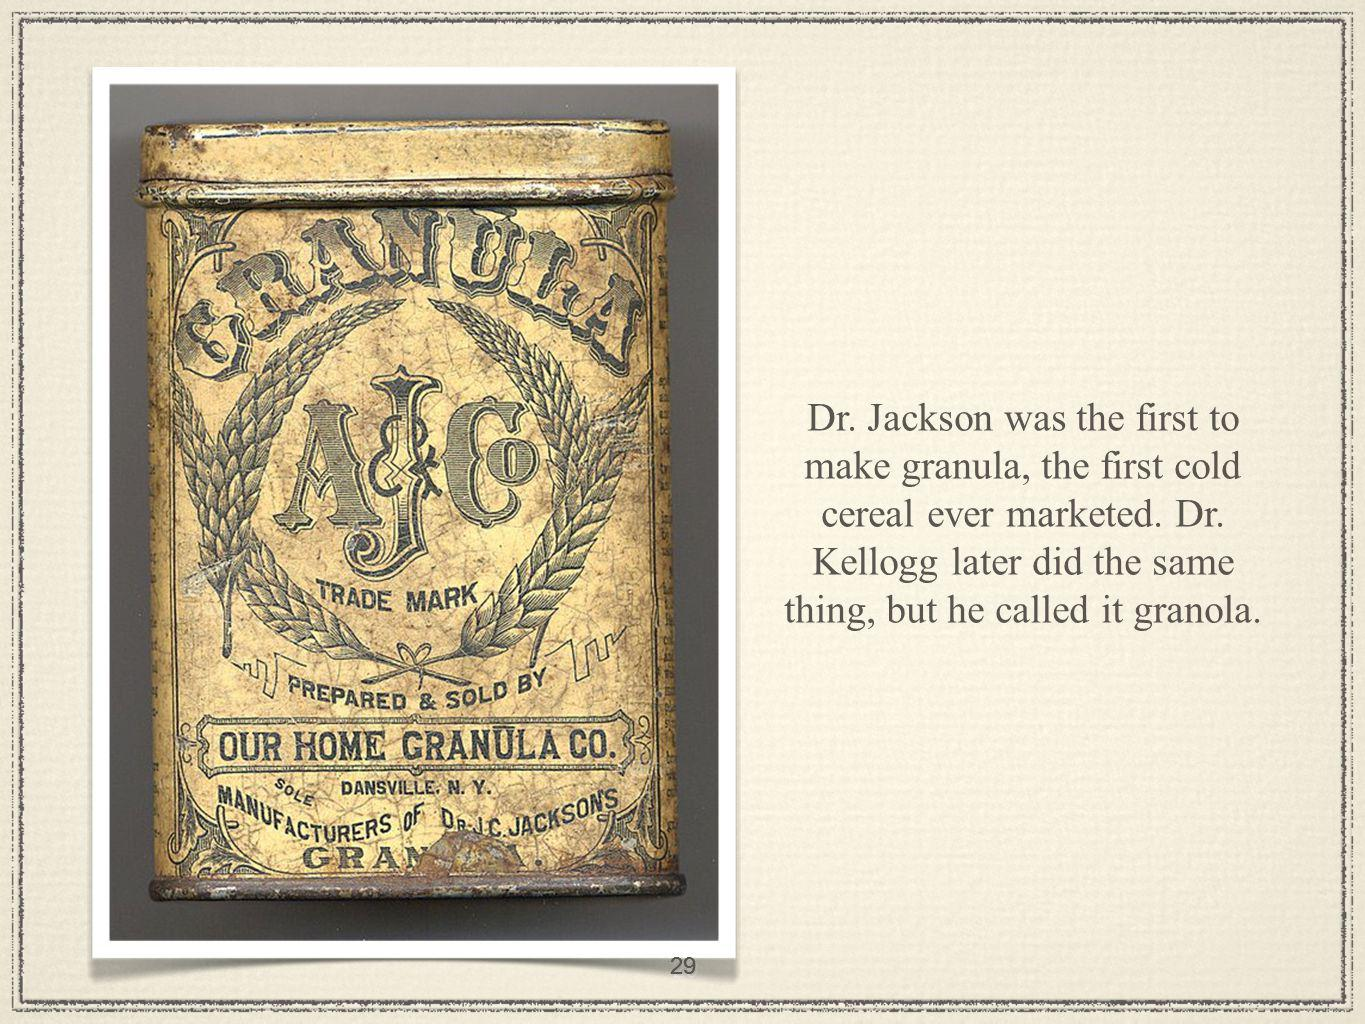 29 Dr. Jackson was the first to make granula, the first cold cereal ever marketed.